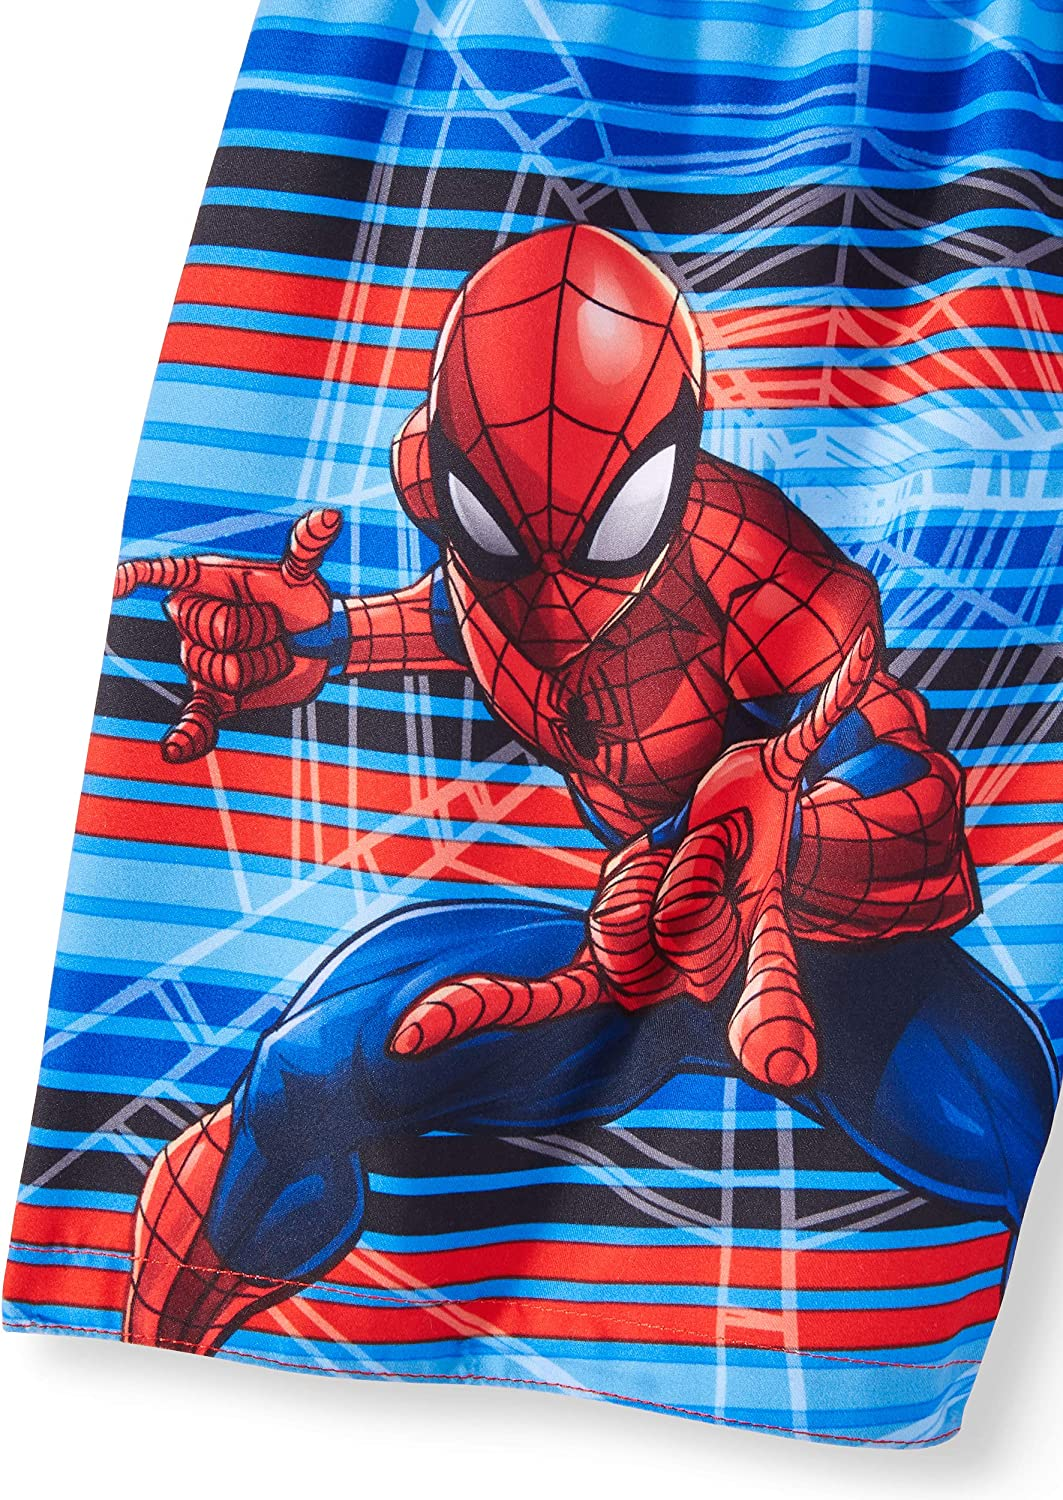 Spider-Man Toddler Boys Blue Red Combo Swim Short Trunk 4T